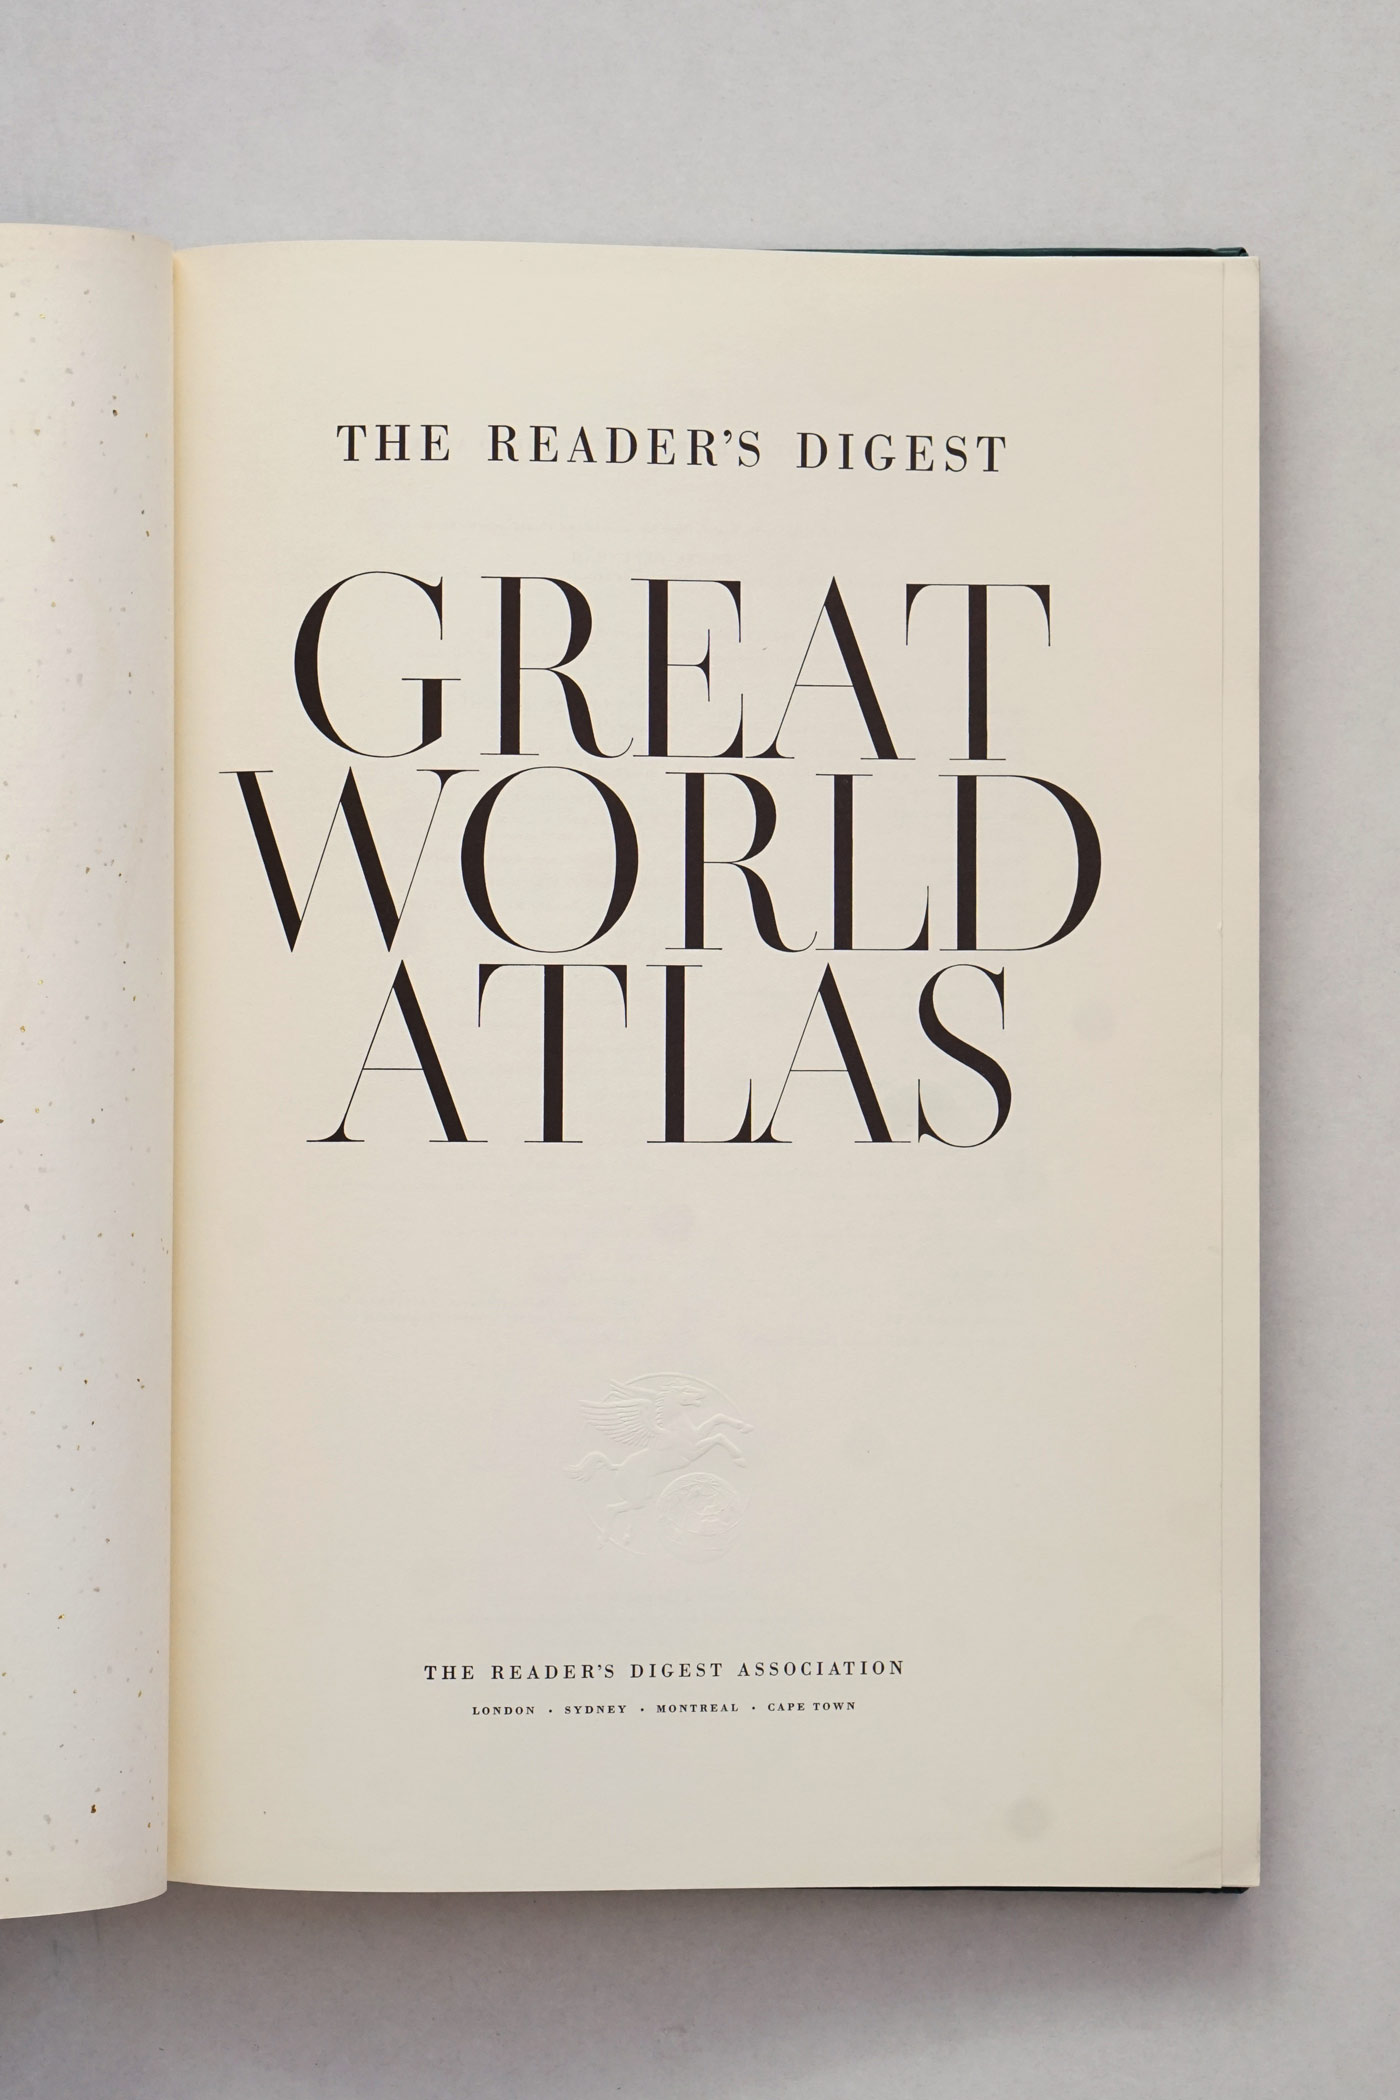 The Reader's Digest Great World Atlas